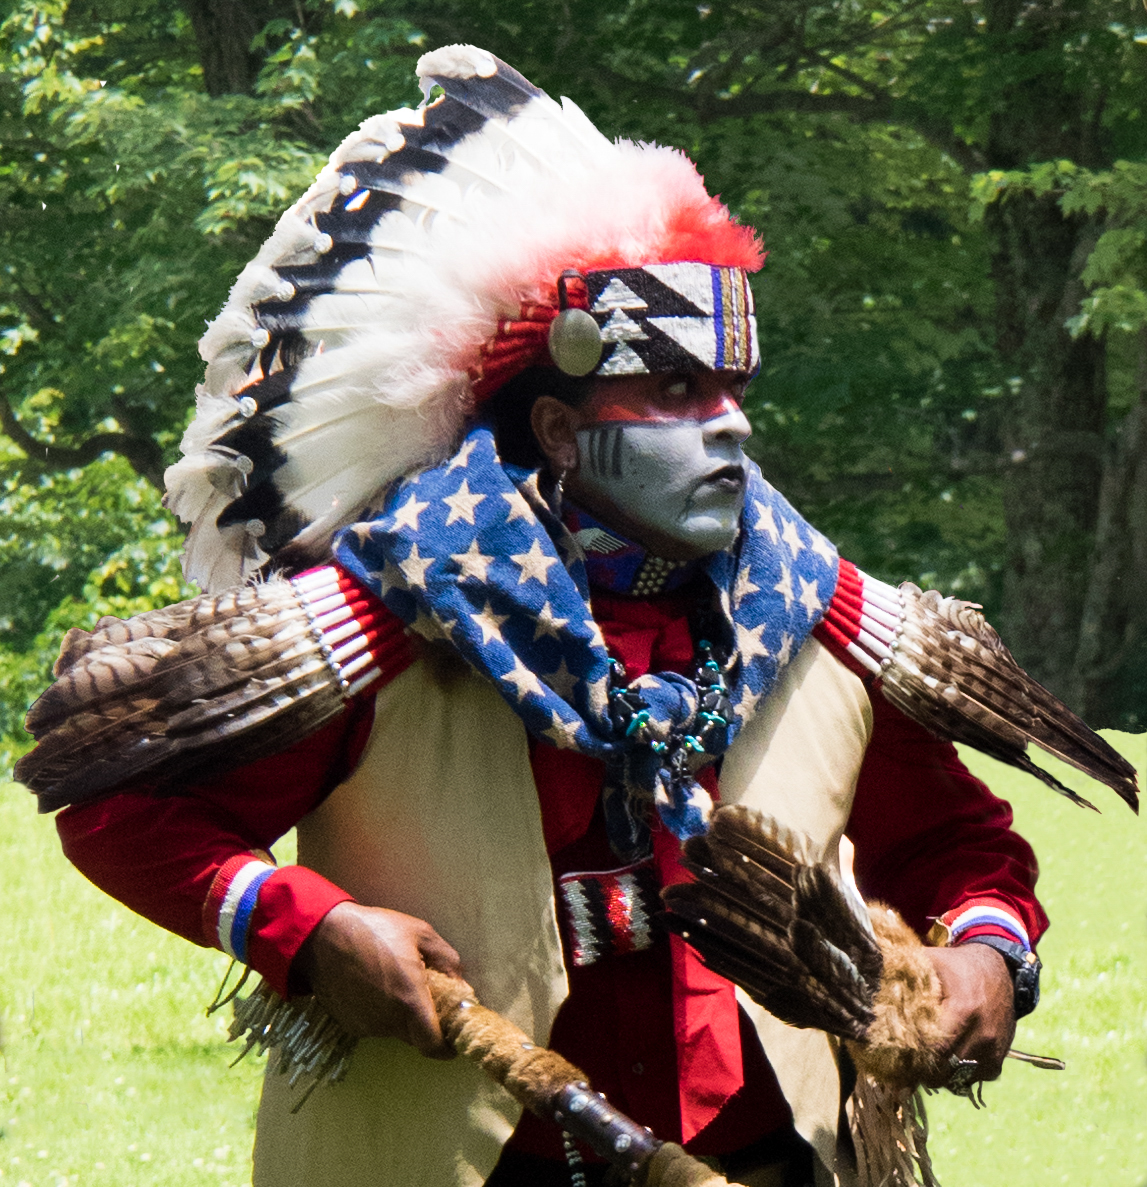 25th Annual Fort Ancient Celebration: A Gathering of FourDirections